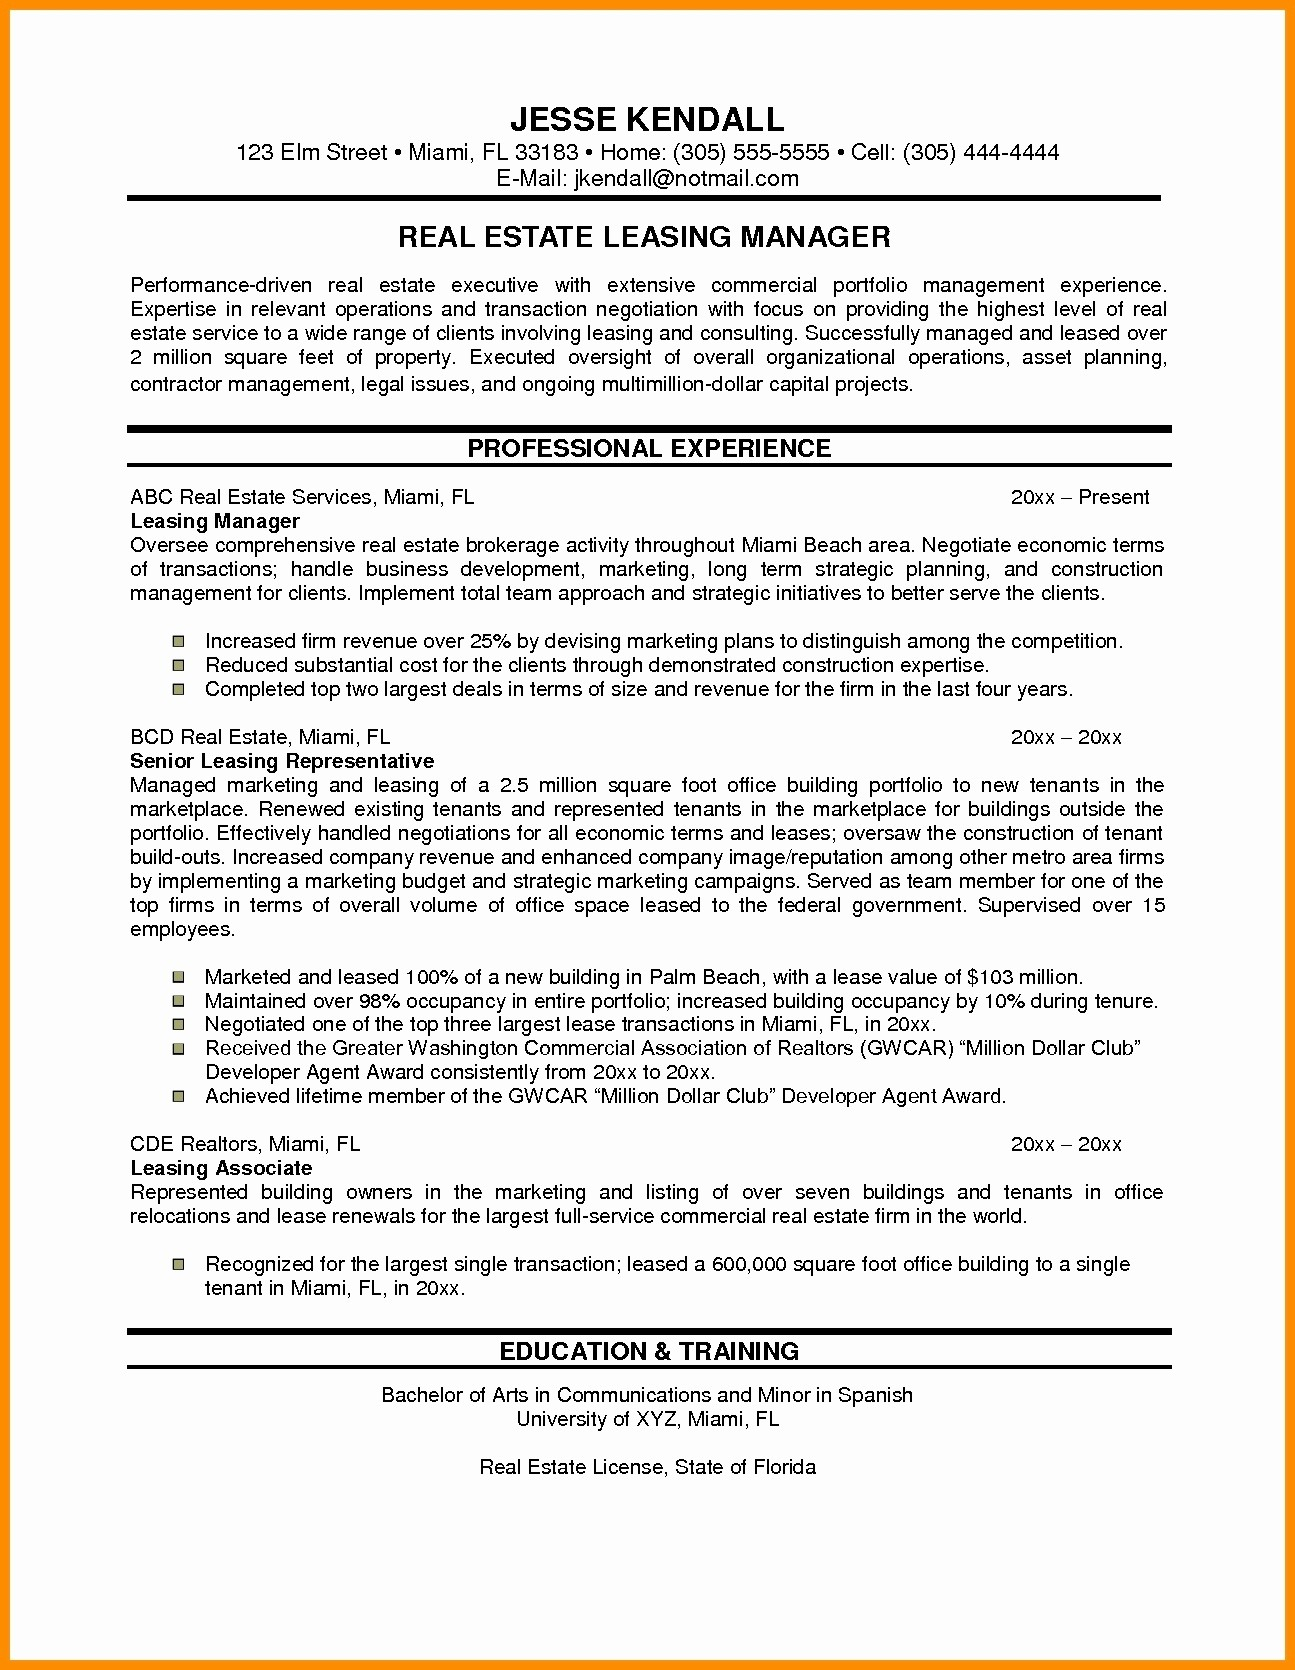 Firm Resume - Real Estate attorney Resume New Sample Resume for Property Manager